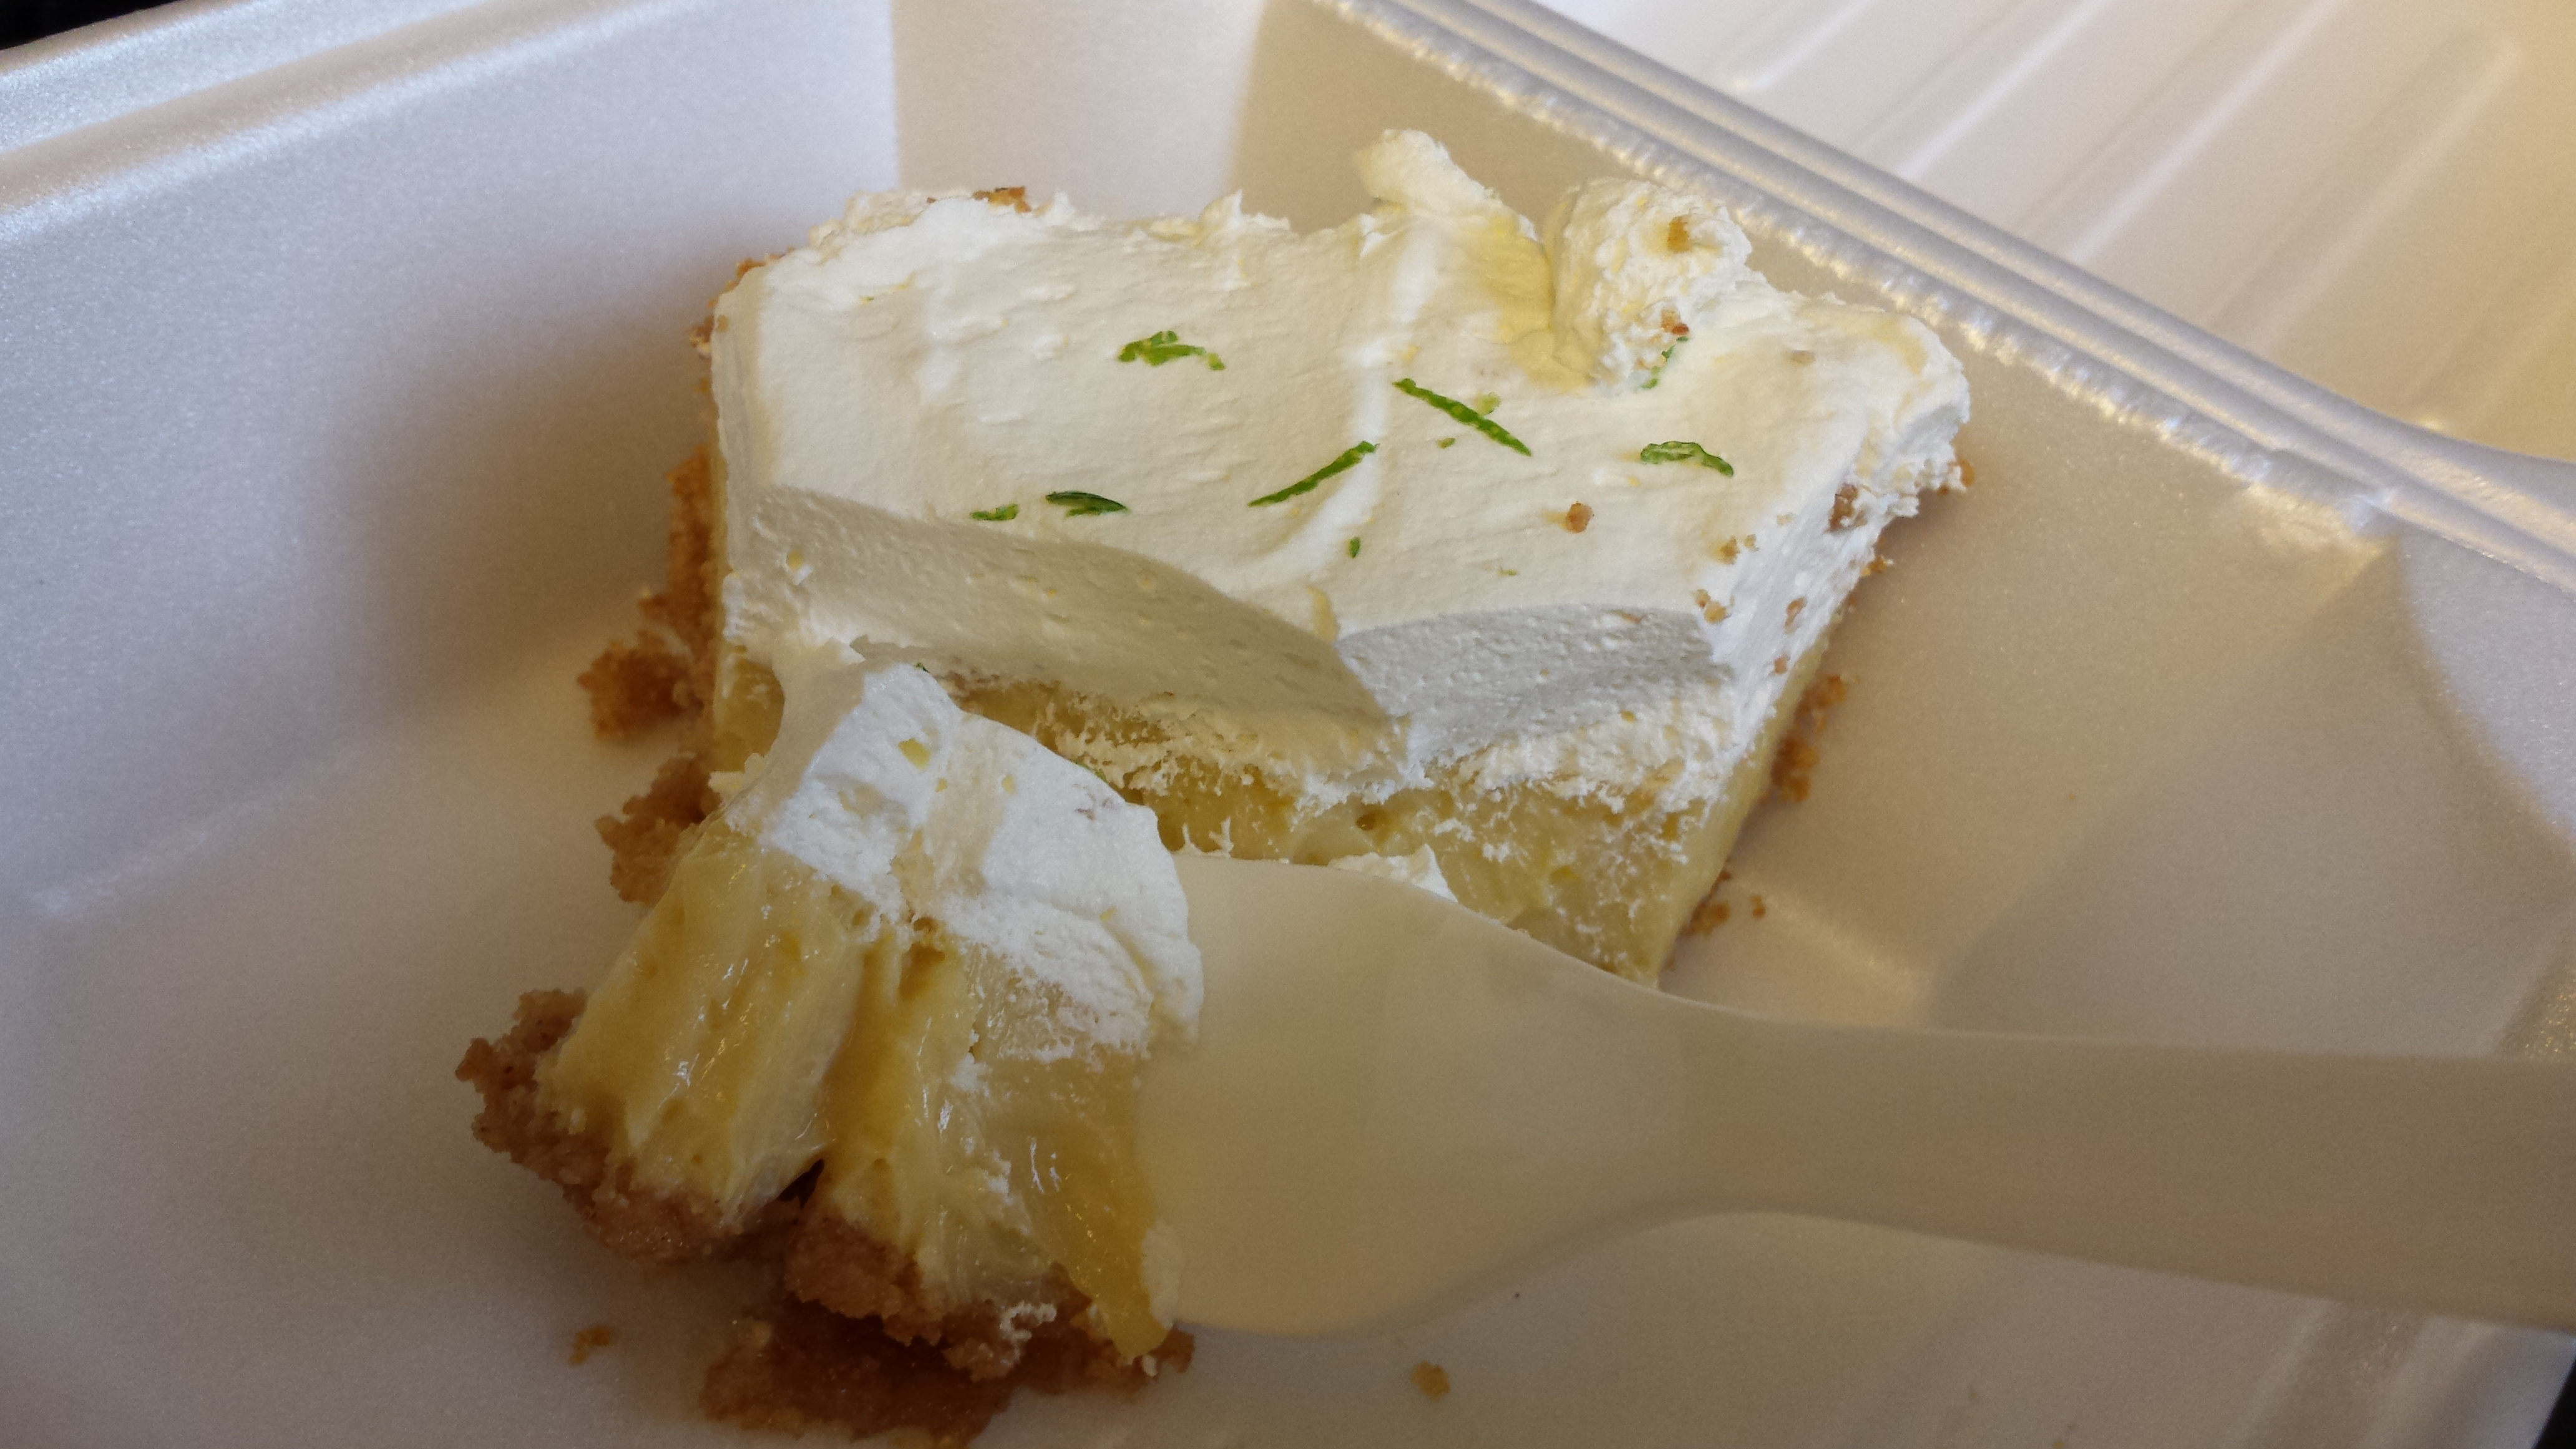 The Joint's Key lime pie